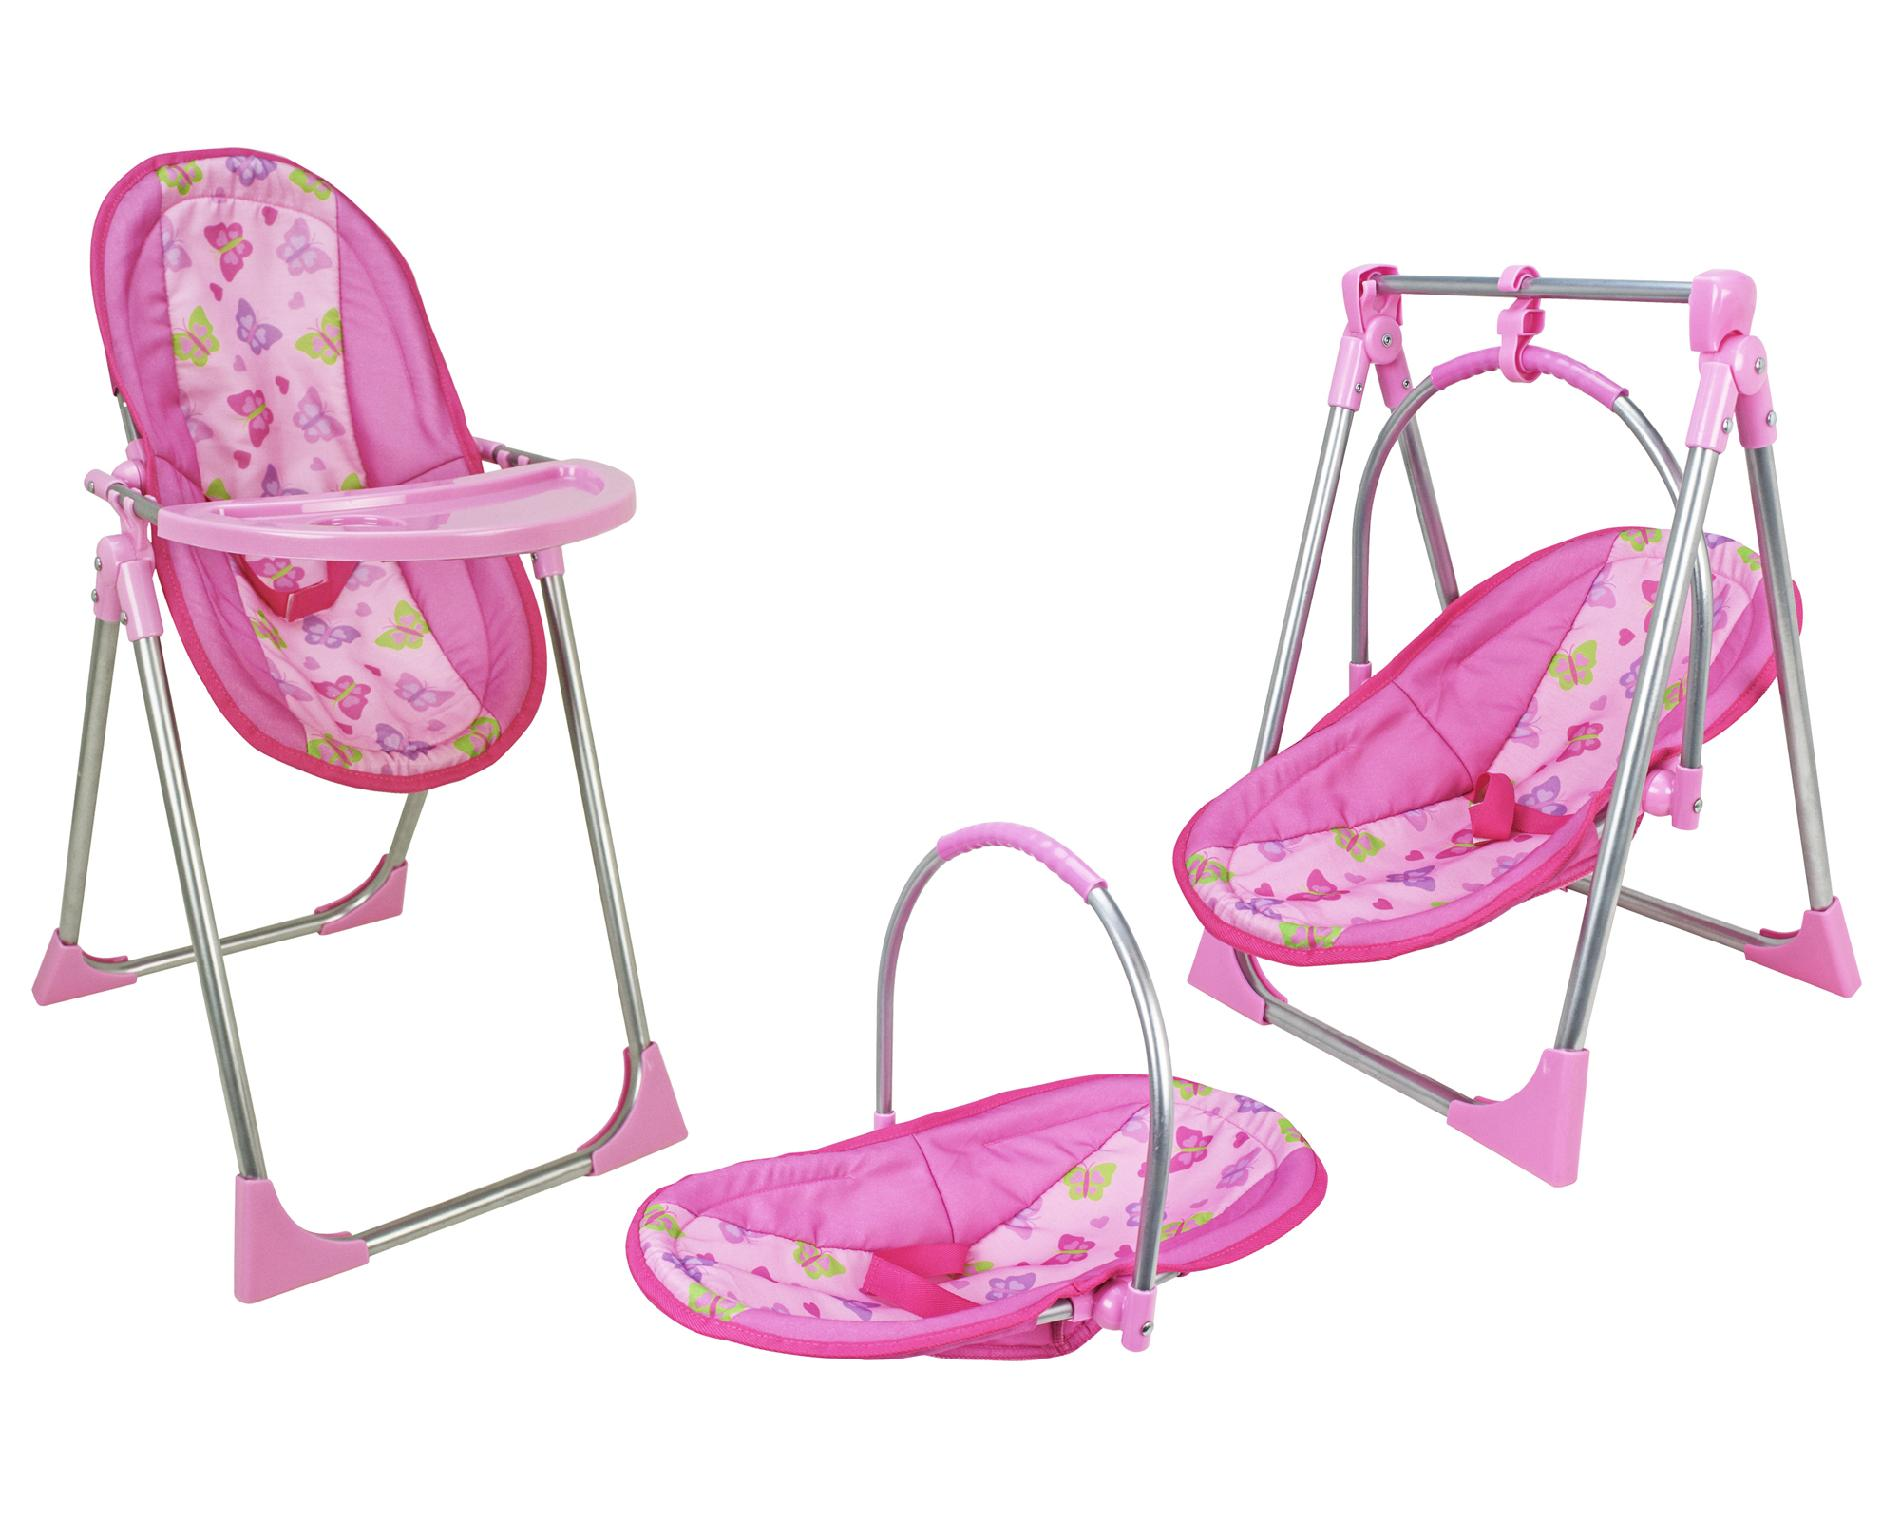 baby toy high chair set boat captain chairs 3 in 1 butterfly print doll toys and games dolls